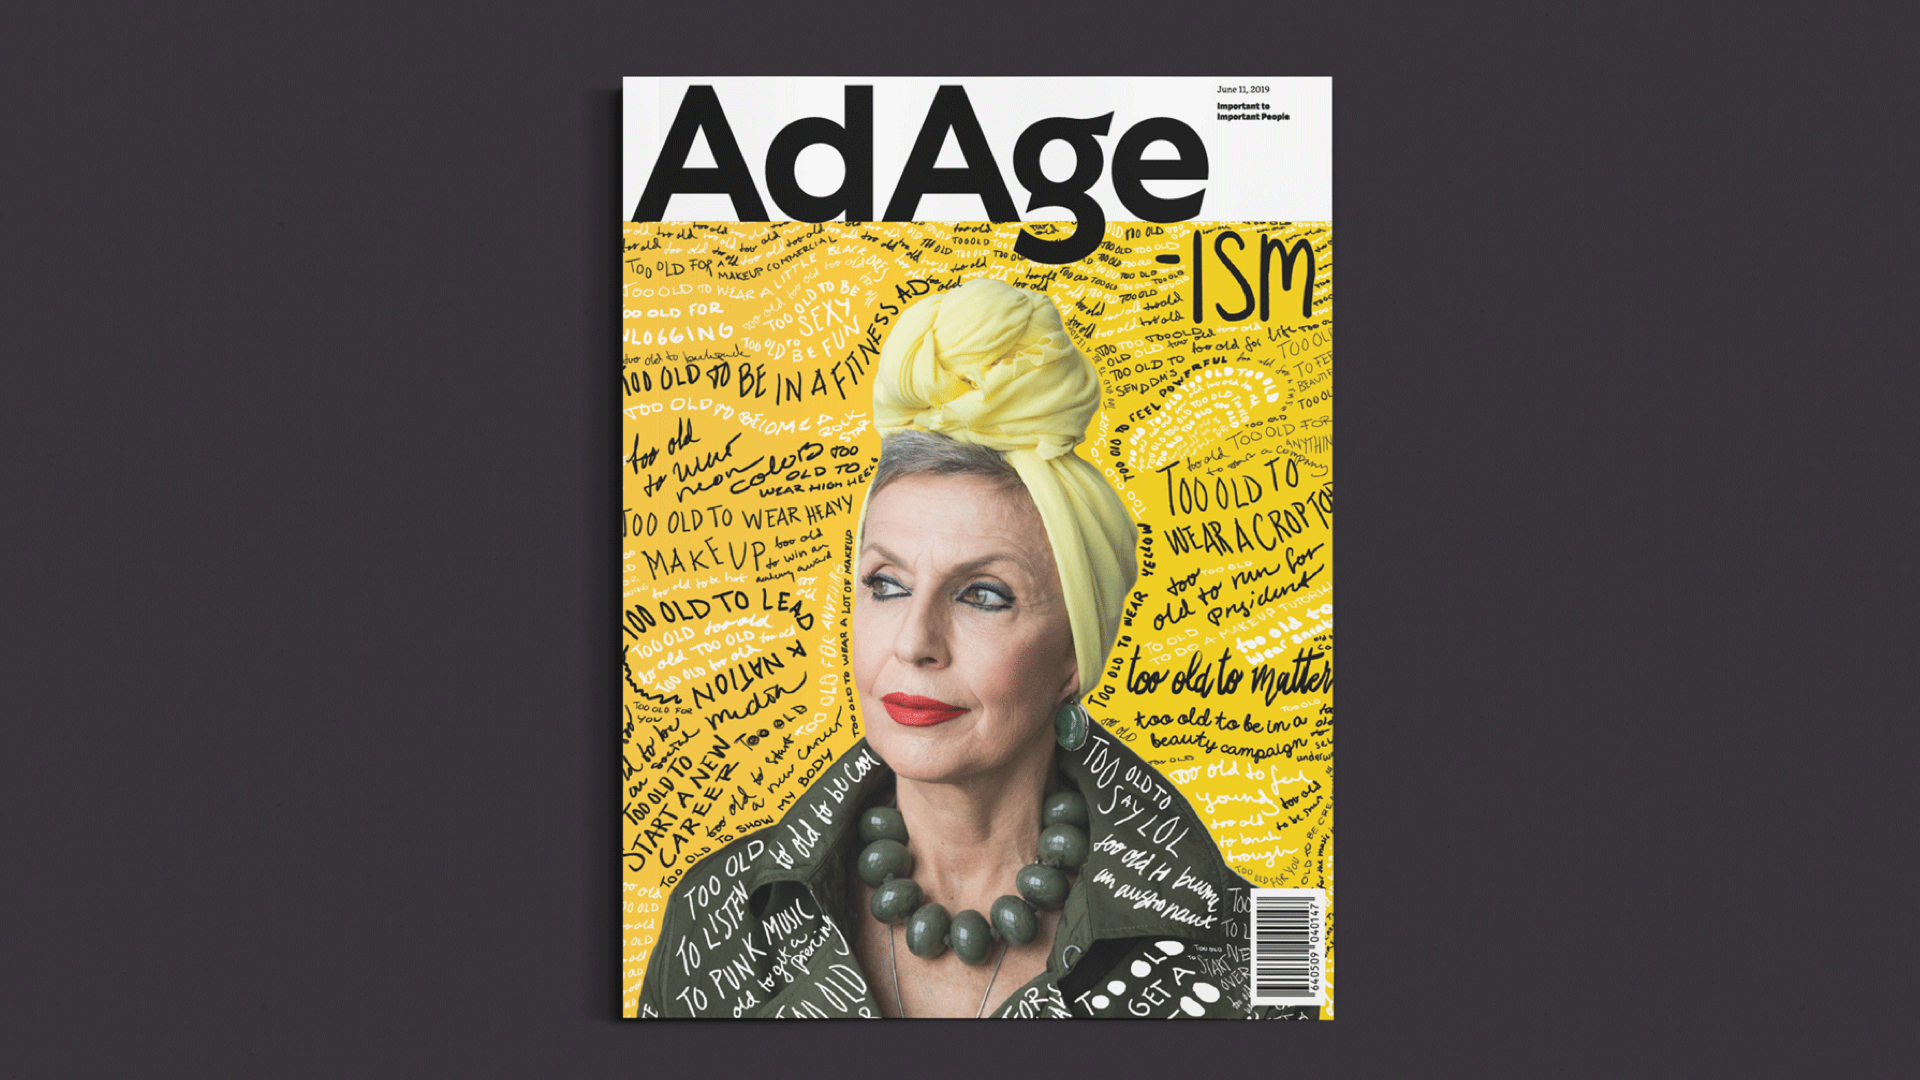 mockup_03_adage-cover-cometition_1920x1080px.png